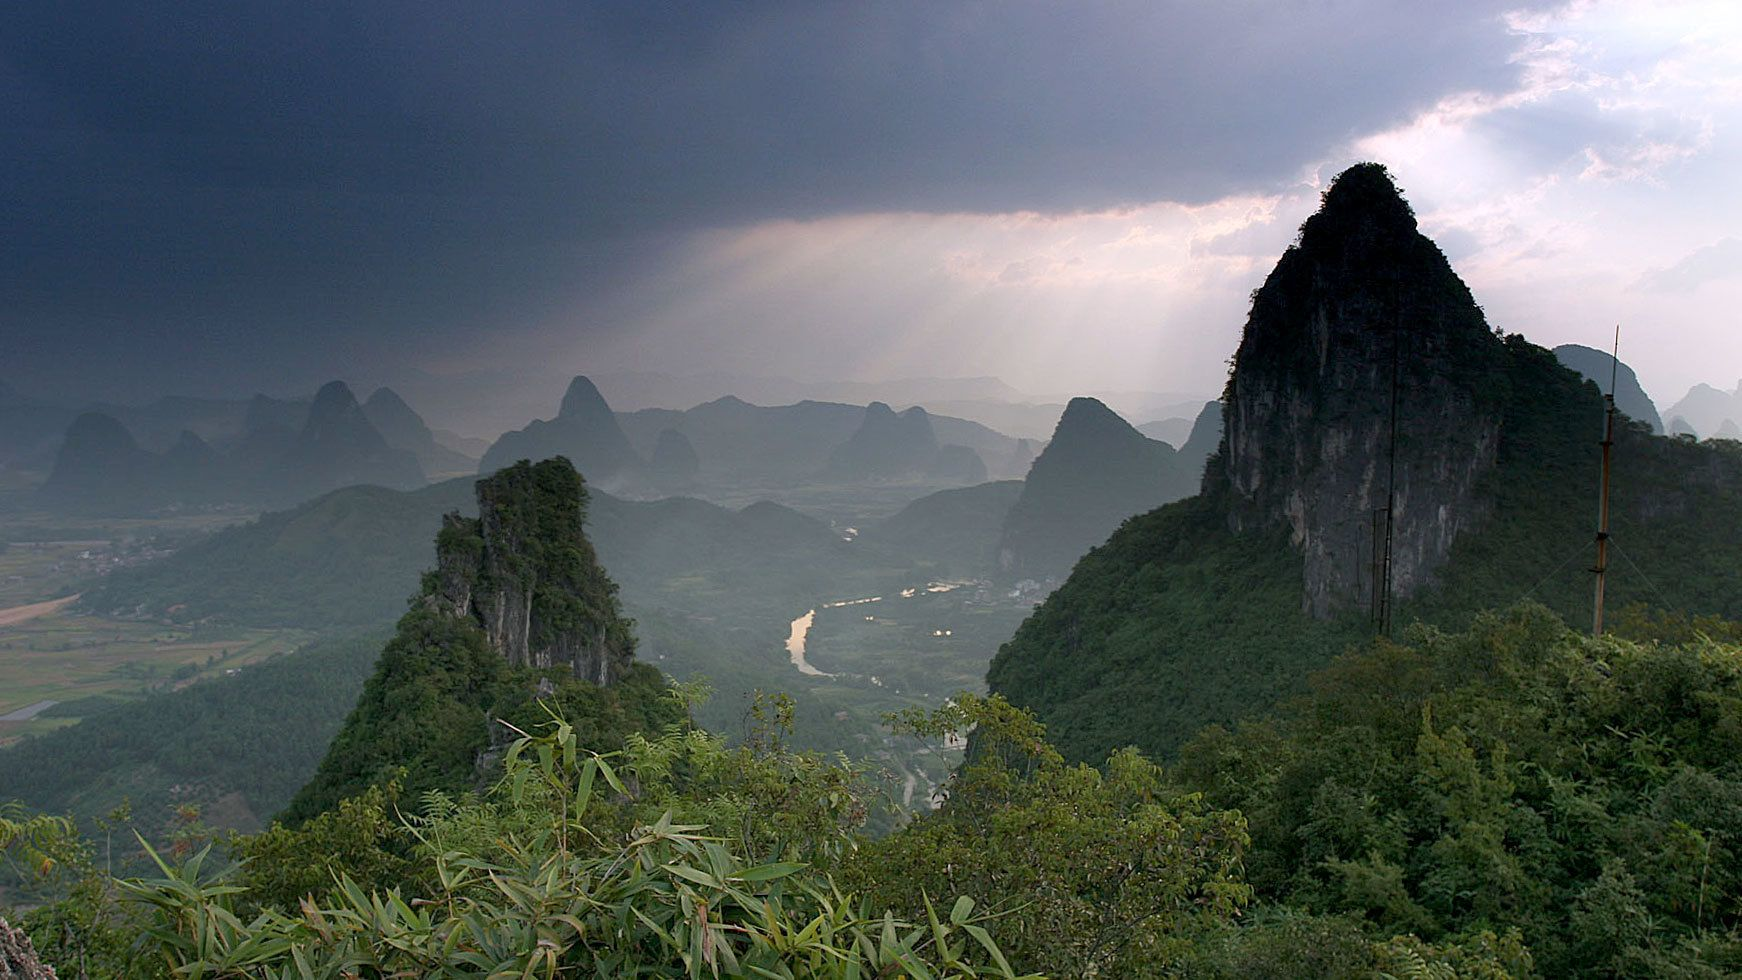 Sunlight streaming through the clouds on the mountains surrounding Yangshuo